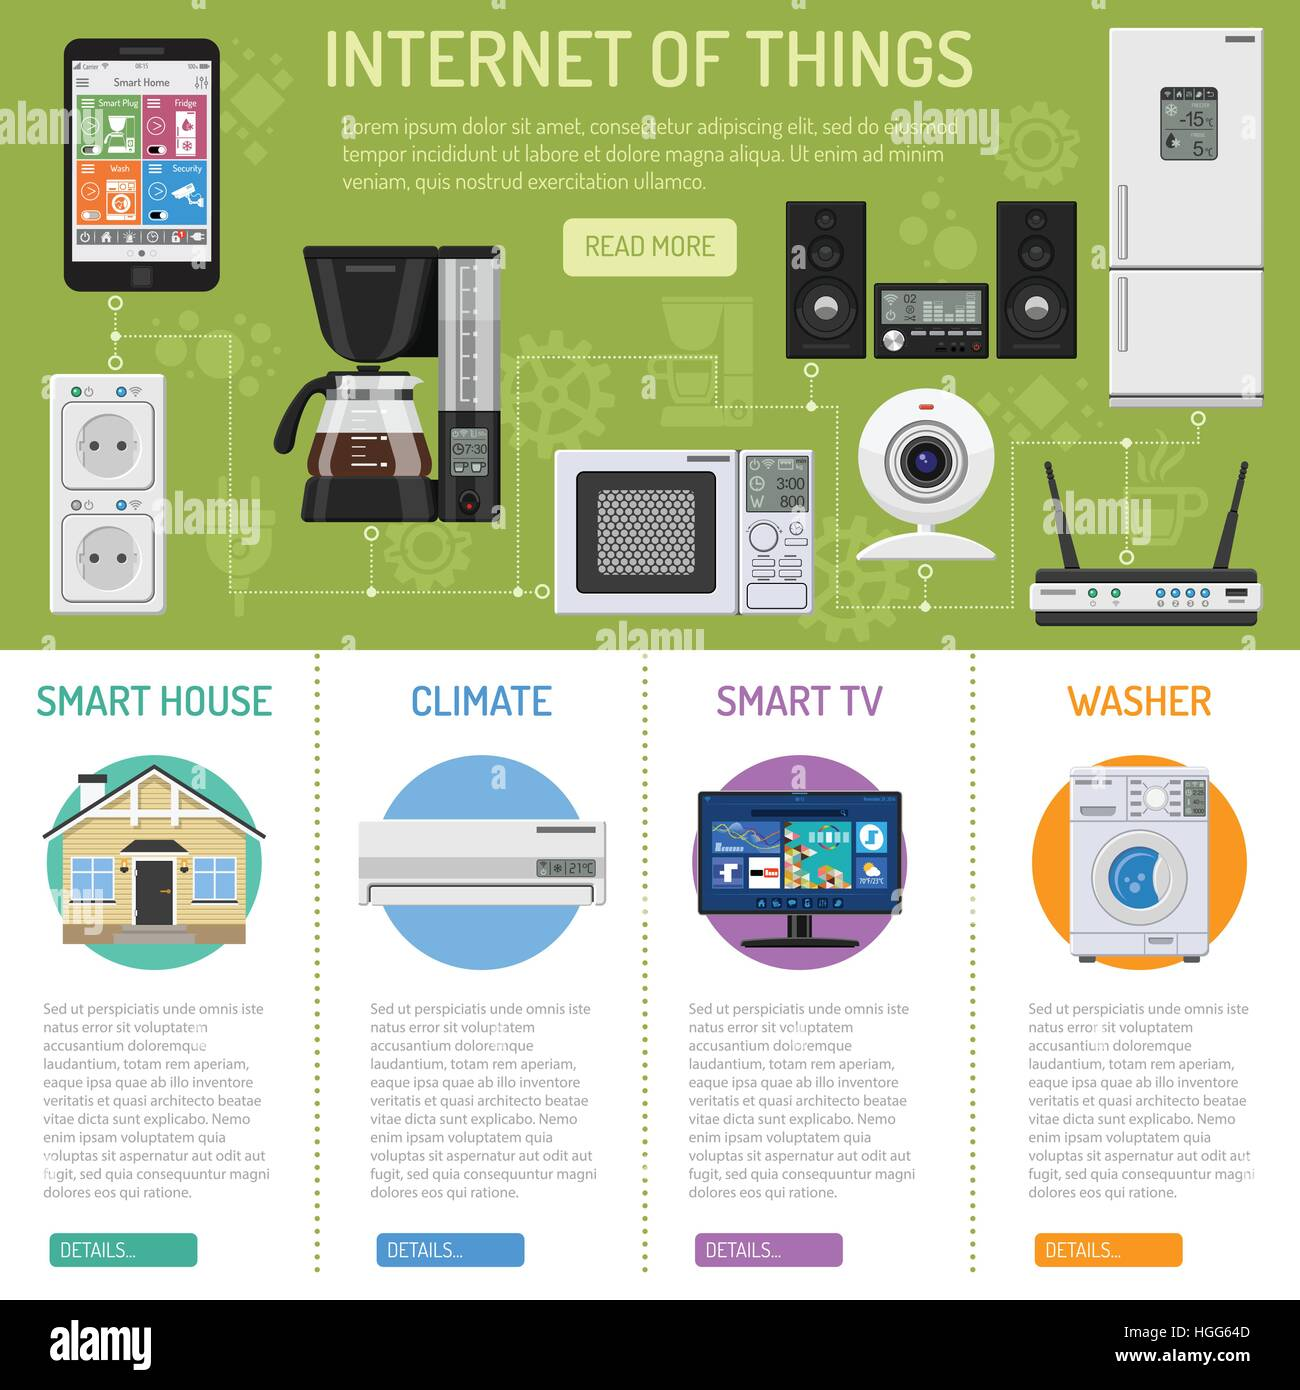 Smart House and internet of things - Stock Image